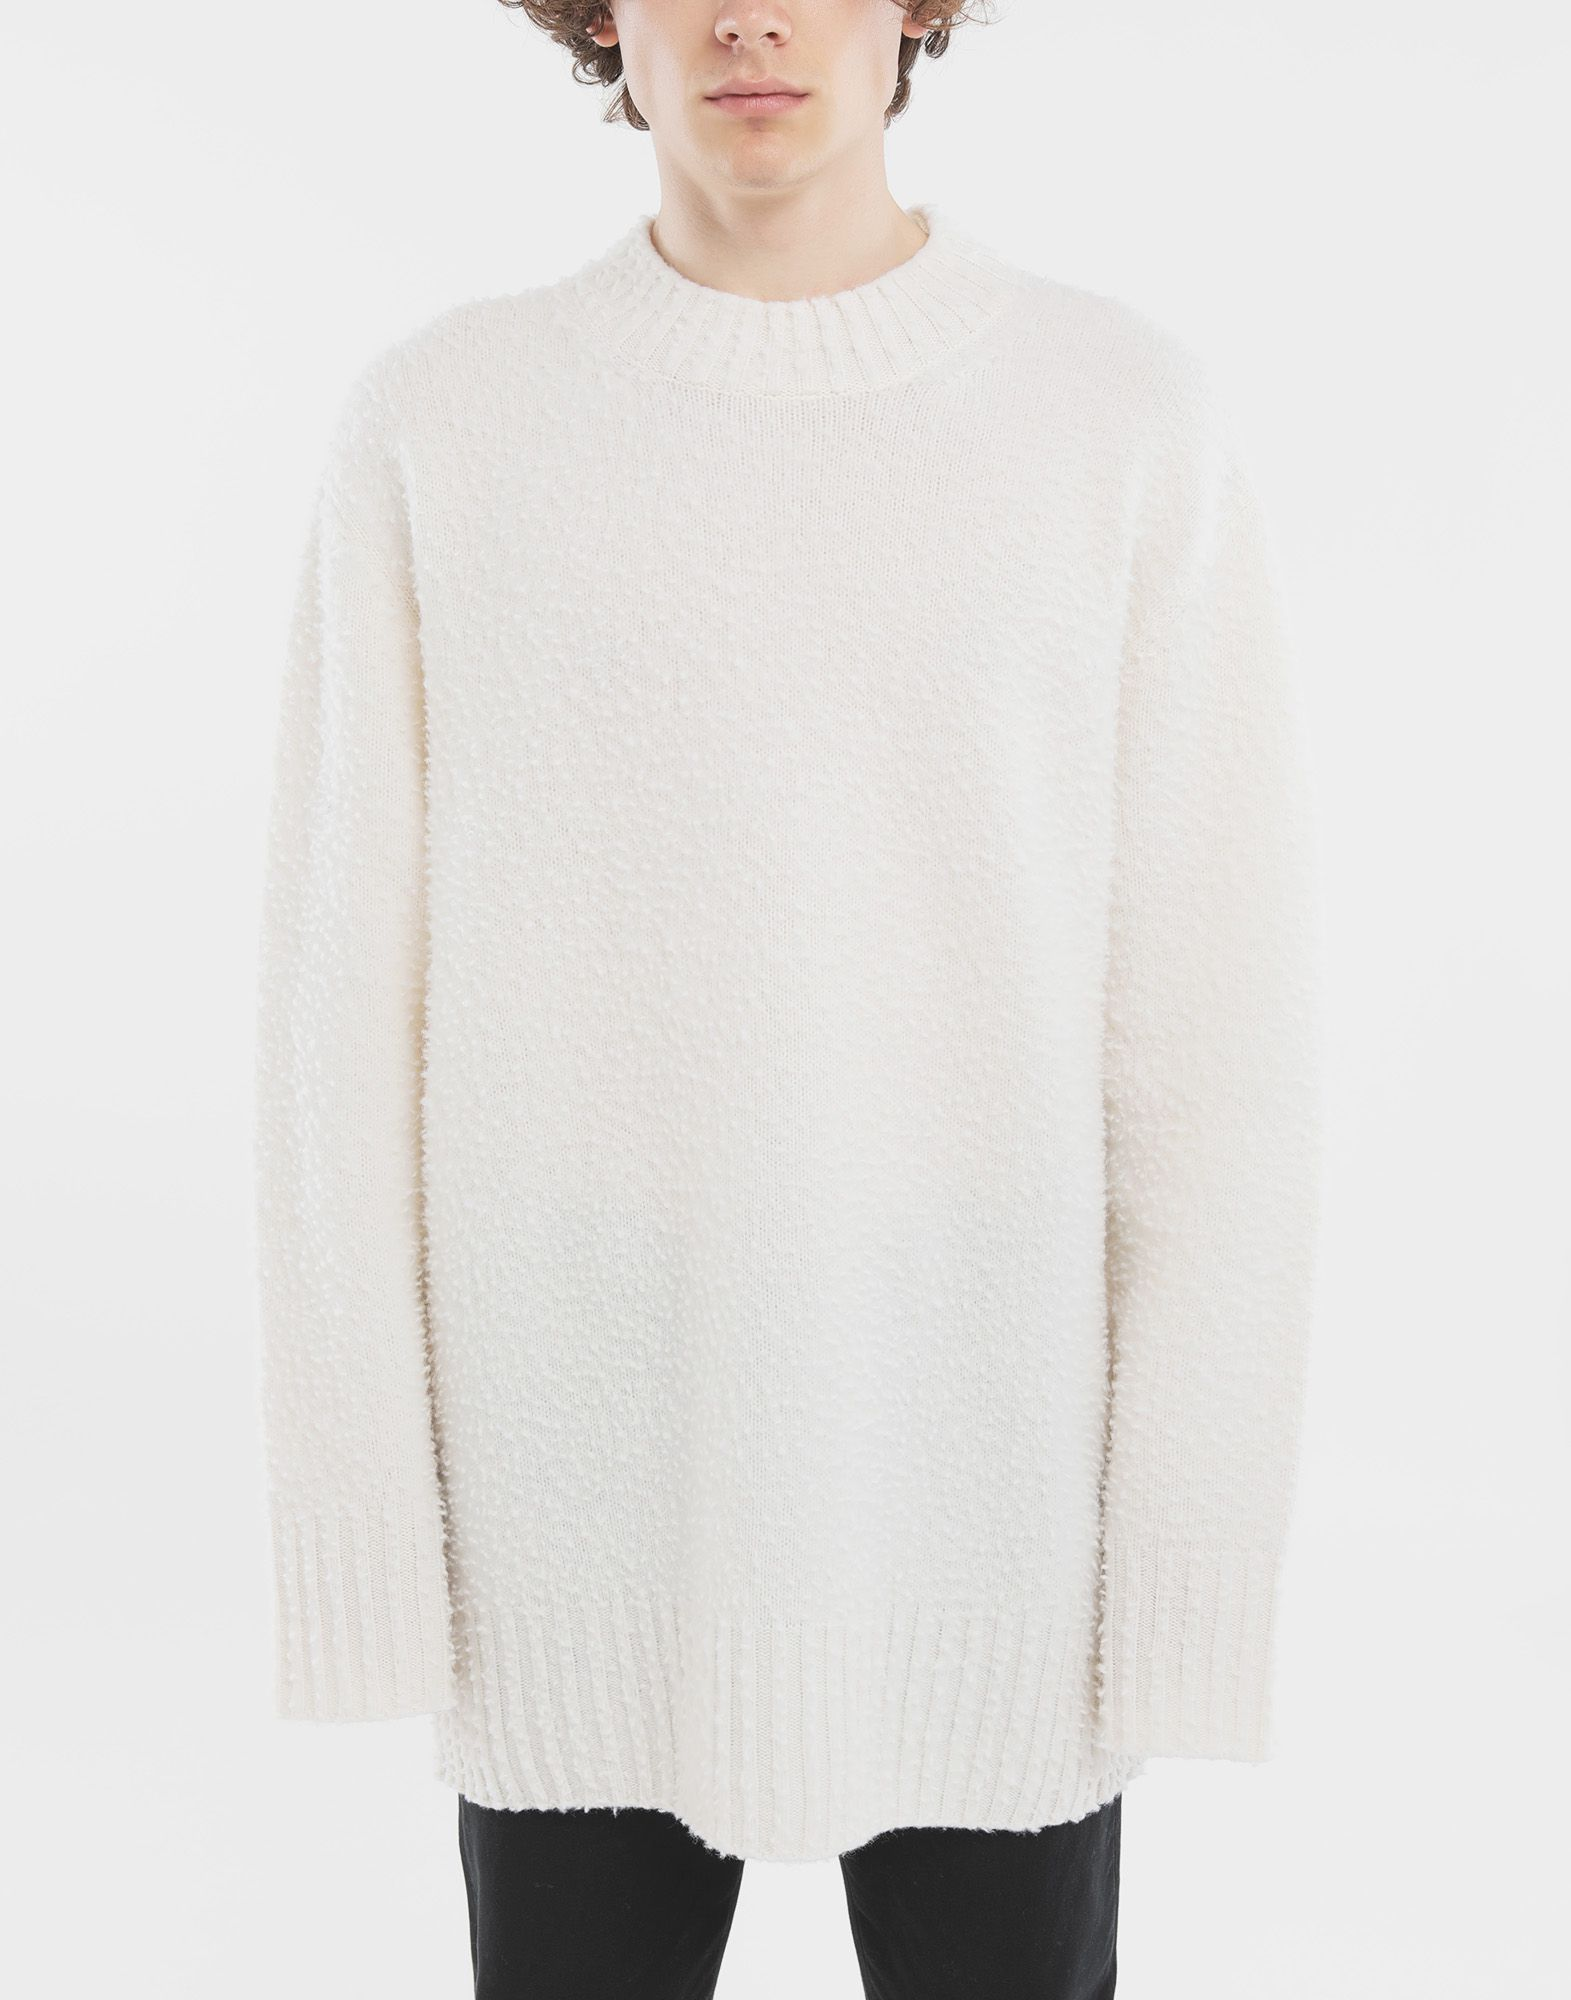 MAISON MARGIELA Oversized wool sweater Crewneck sweater Man r